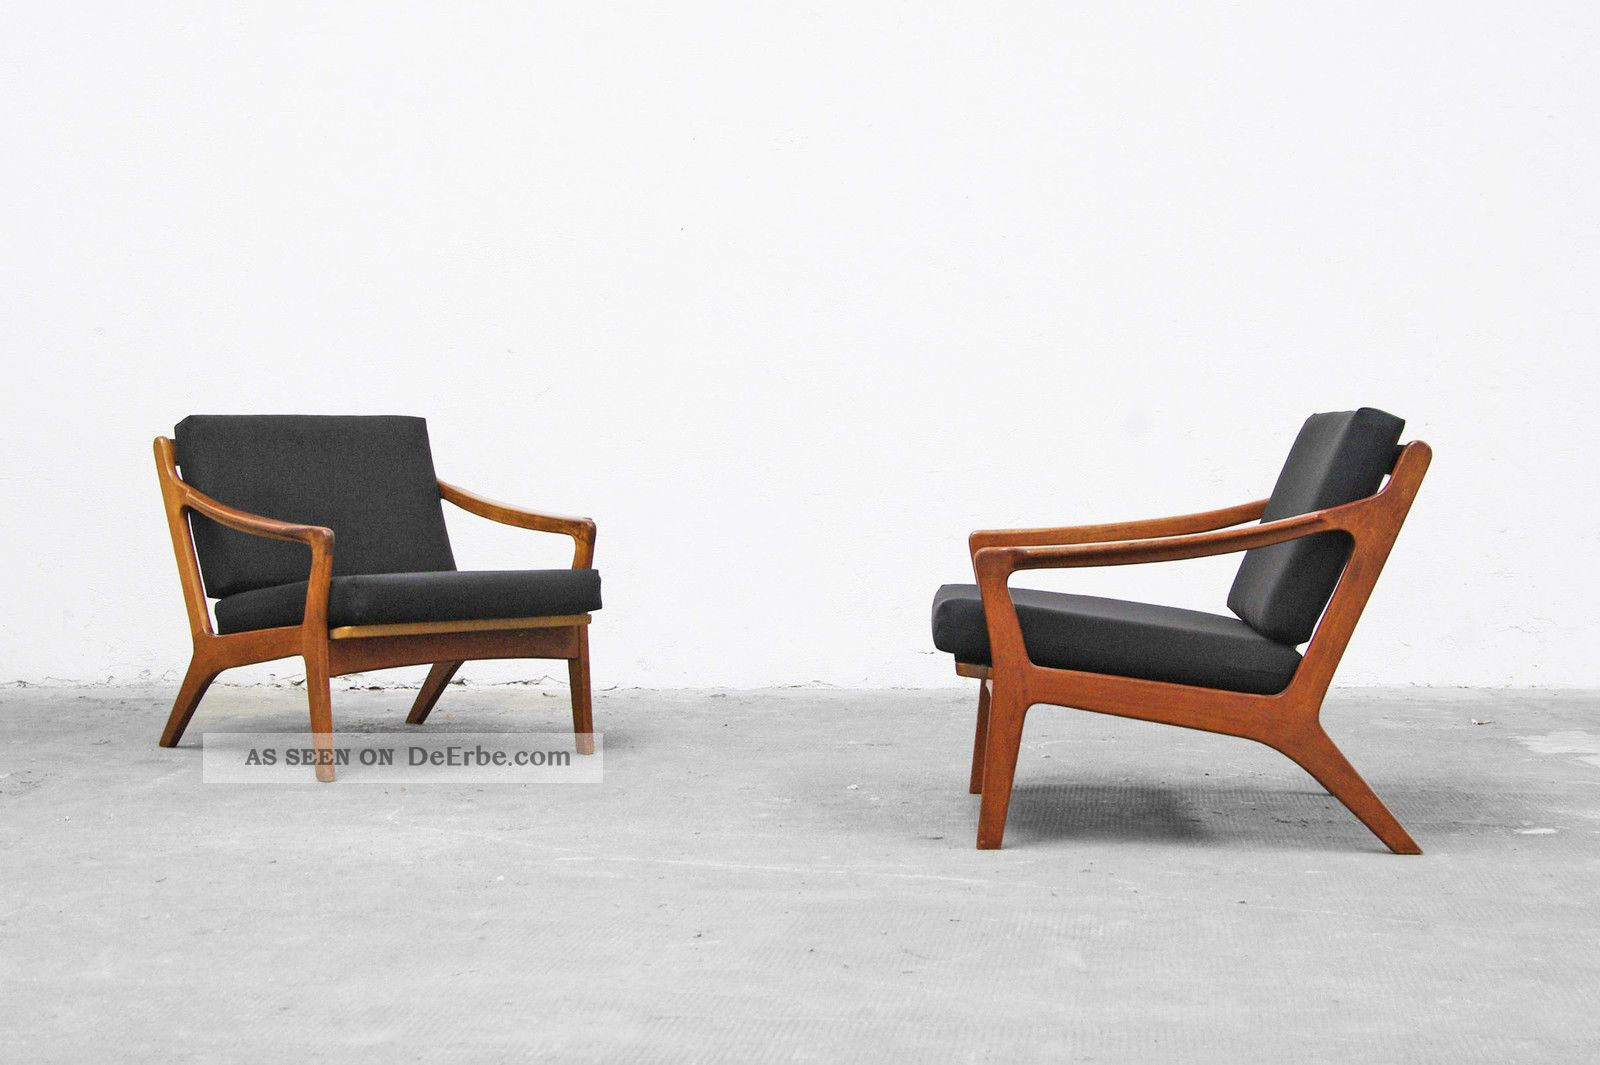 2x sessel easy chair 50er teak 60er danish modern 50s modernist denmark. Black Bedroom Furniture Sets. Home Design Ideas